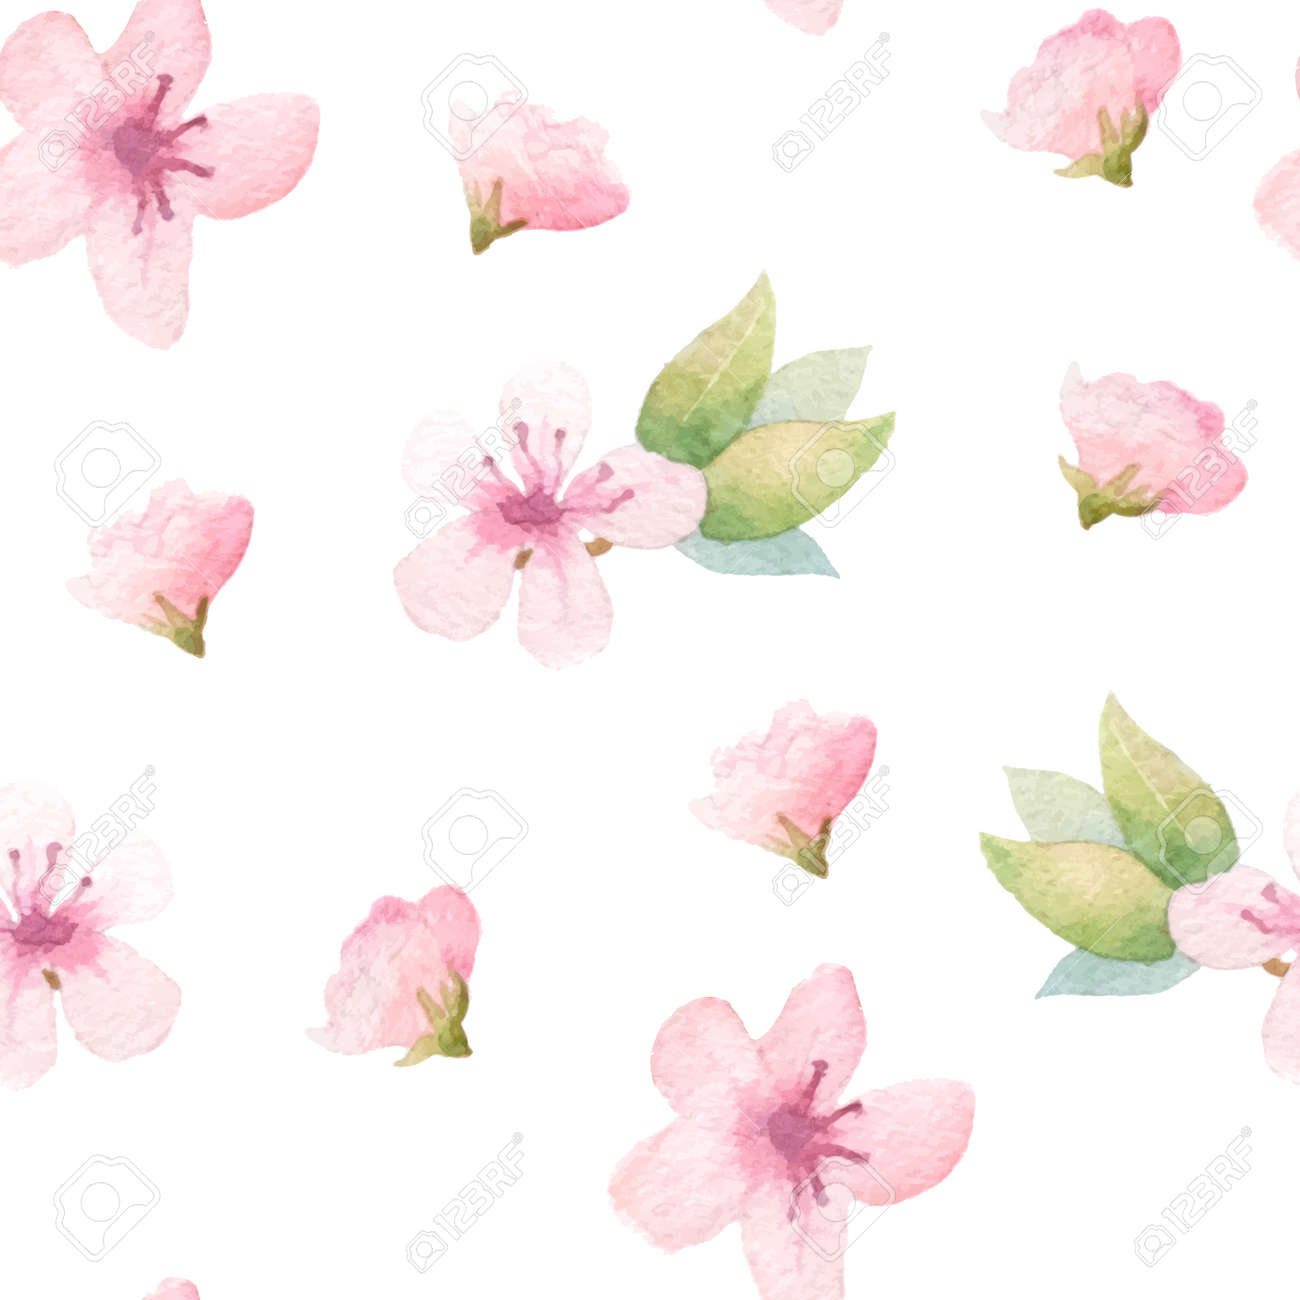 Spring Floral Background With Pink Flowers Painted Apple Tree